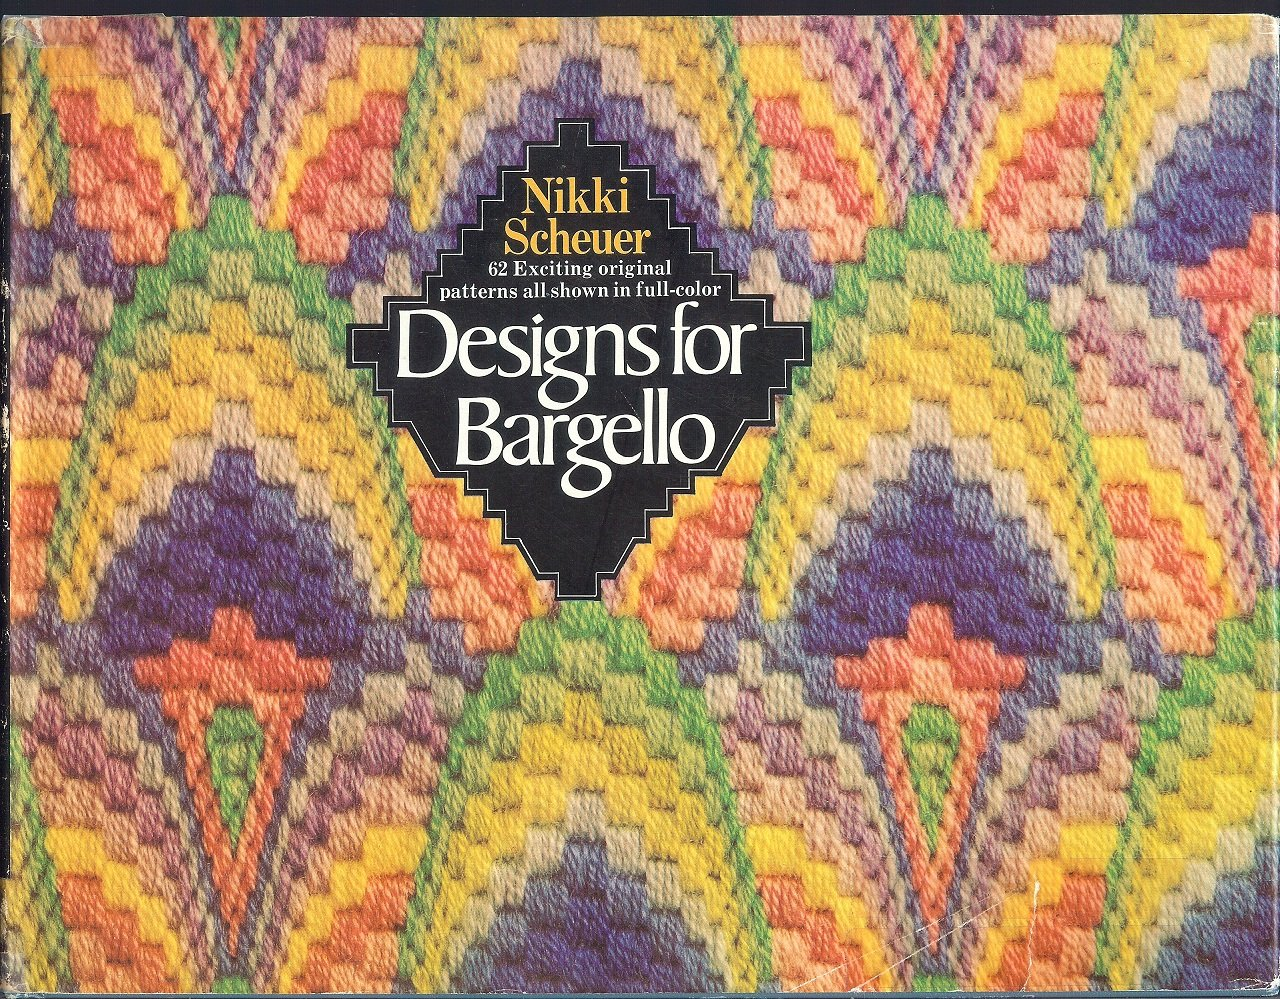 Designs for bargello;: 62 original patterns inspired by or adapted from a range of historical and cultural sources, Scheuer, Nikki